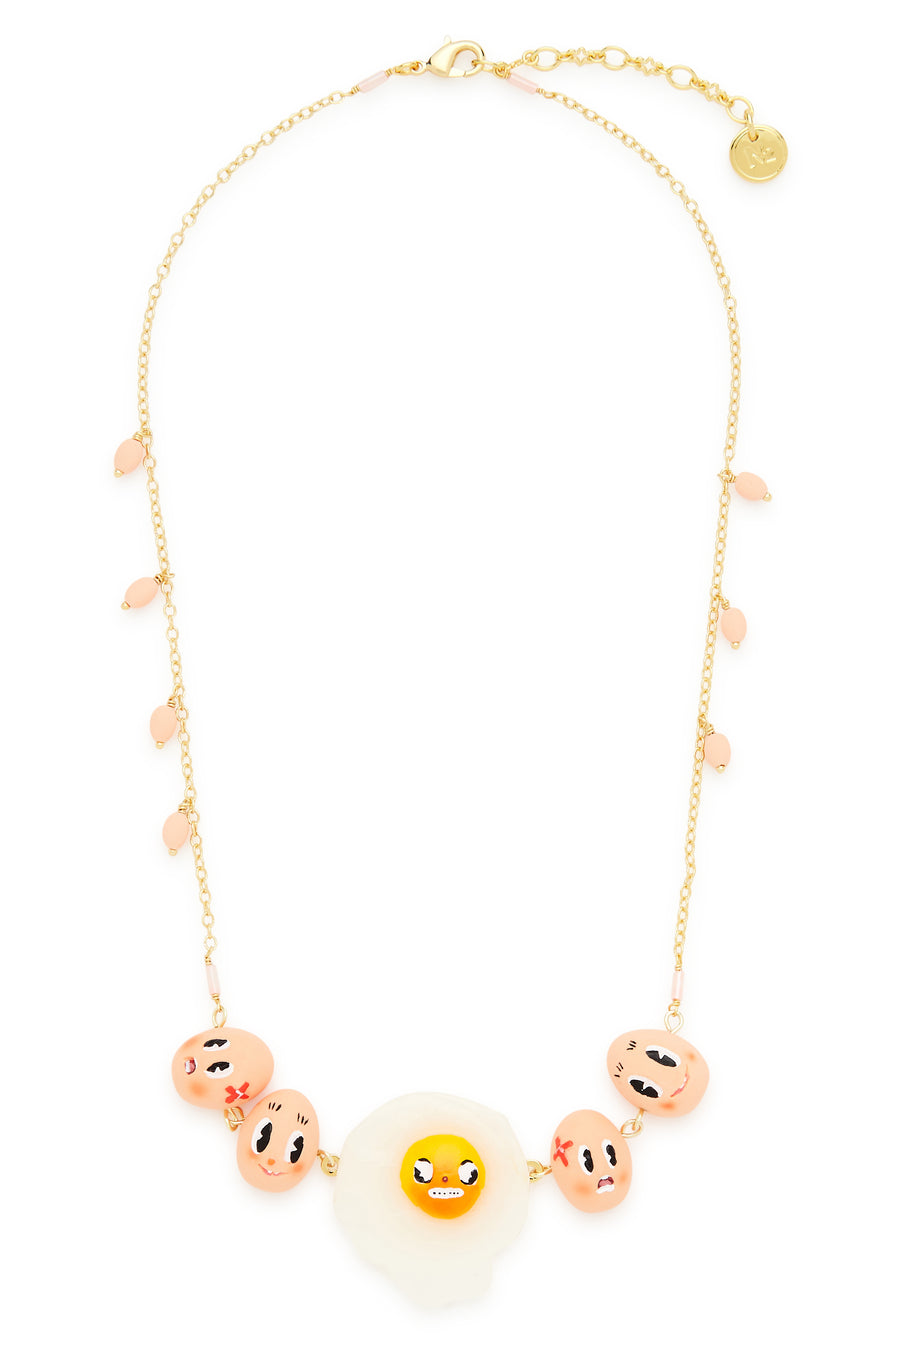 Fried Egg and Friends Necklace